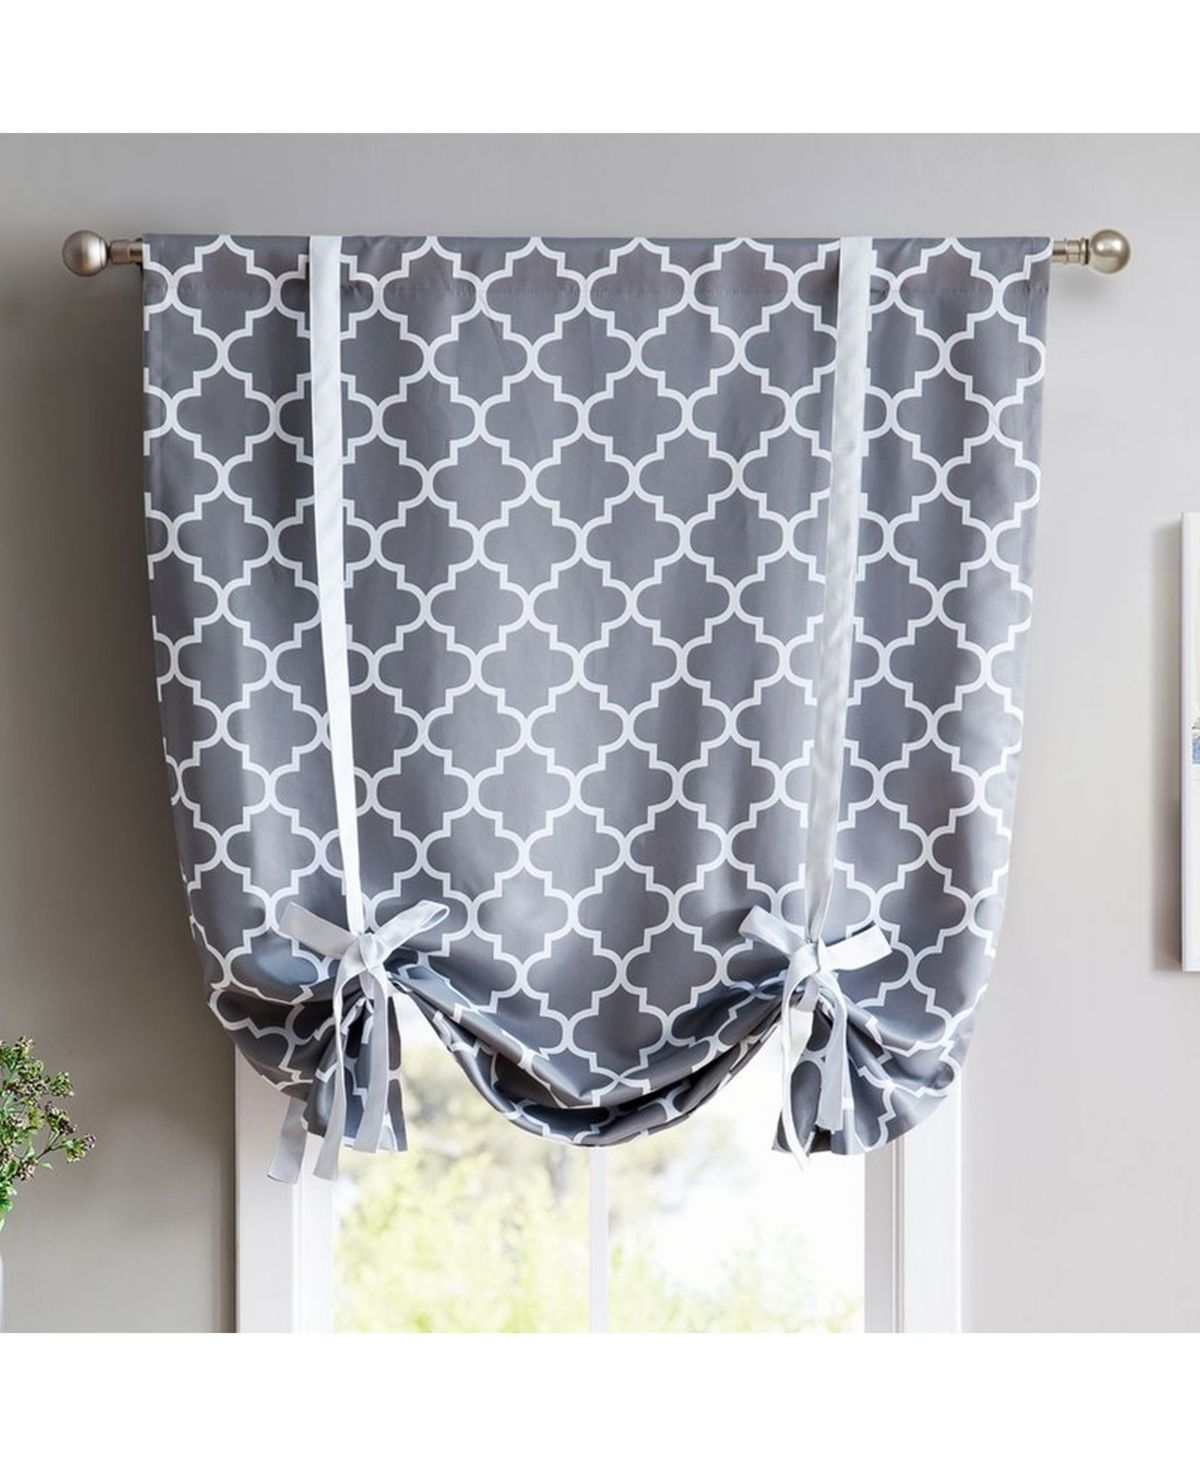 Pin By Mandy On Home Decor In 2020 Tie Up Shades Balloon Shades Curtains